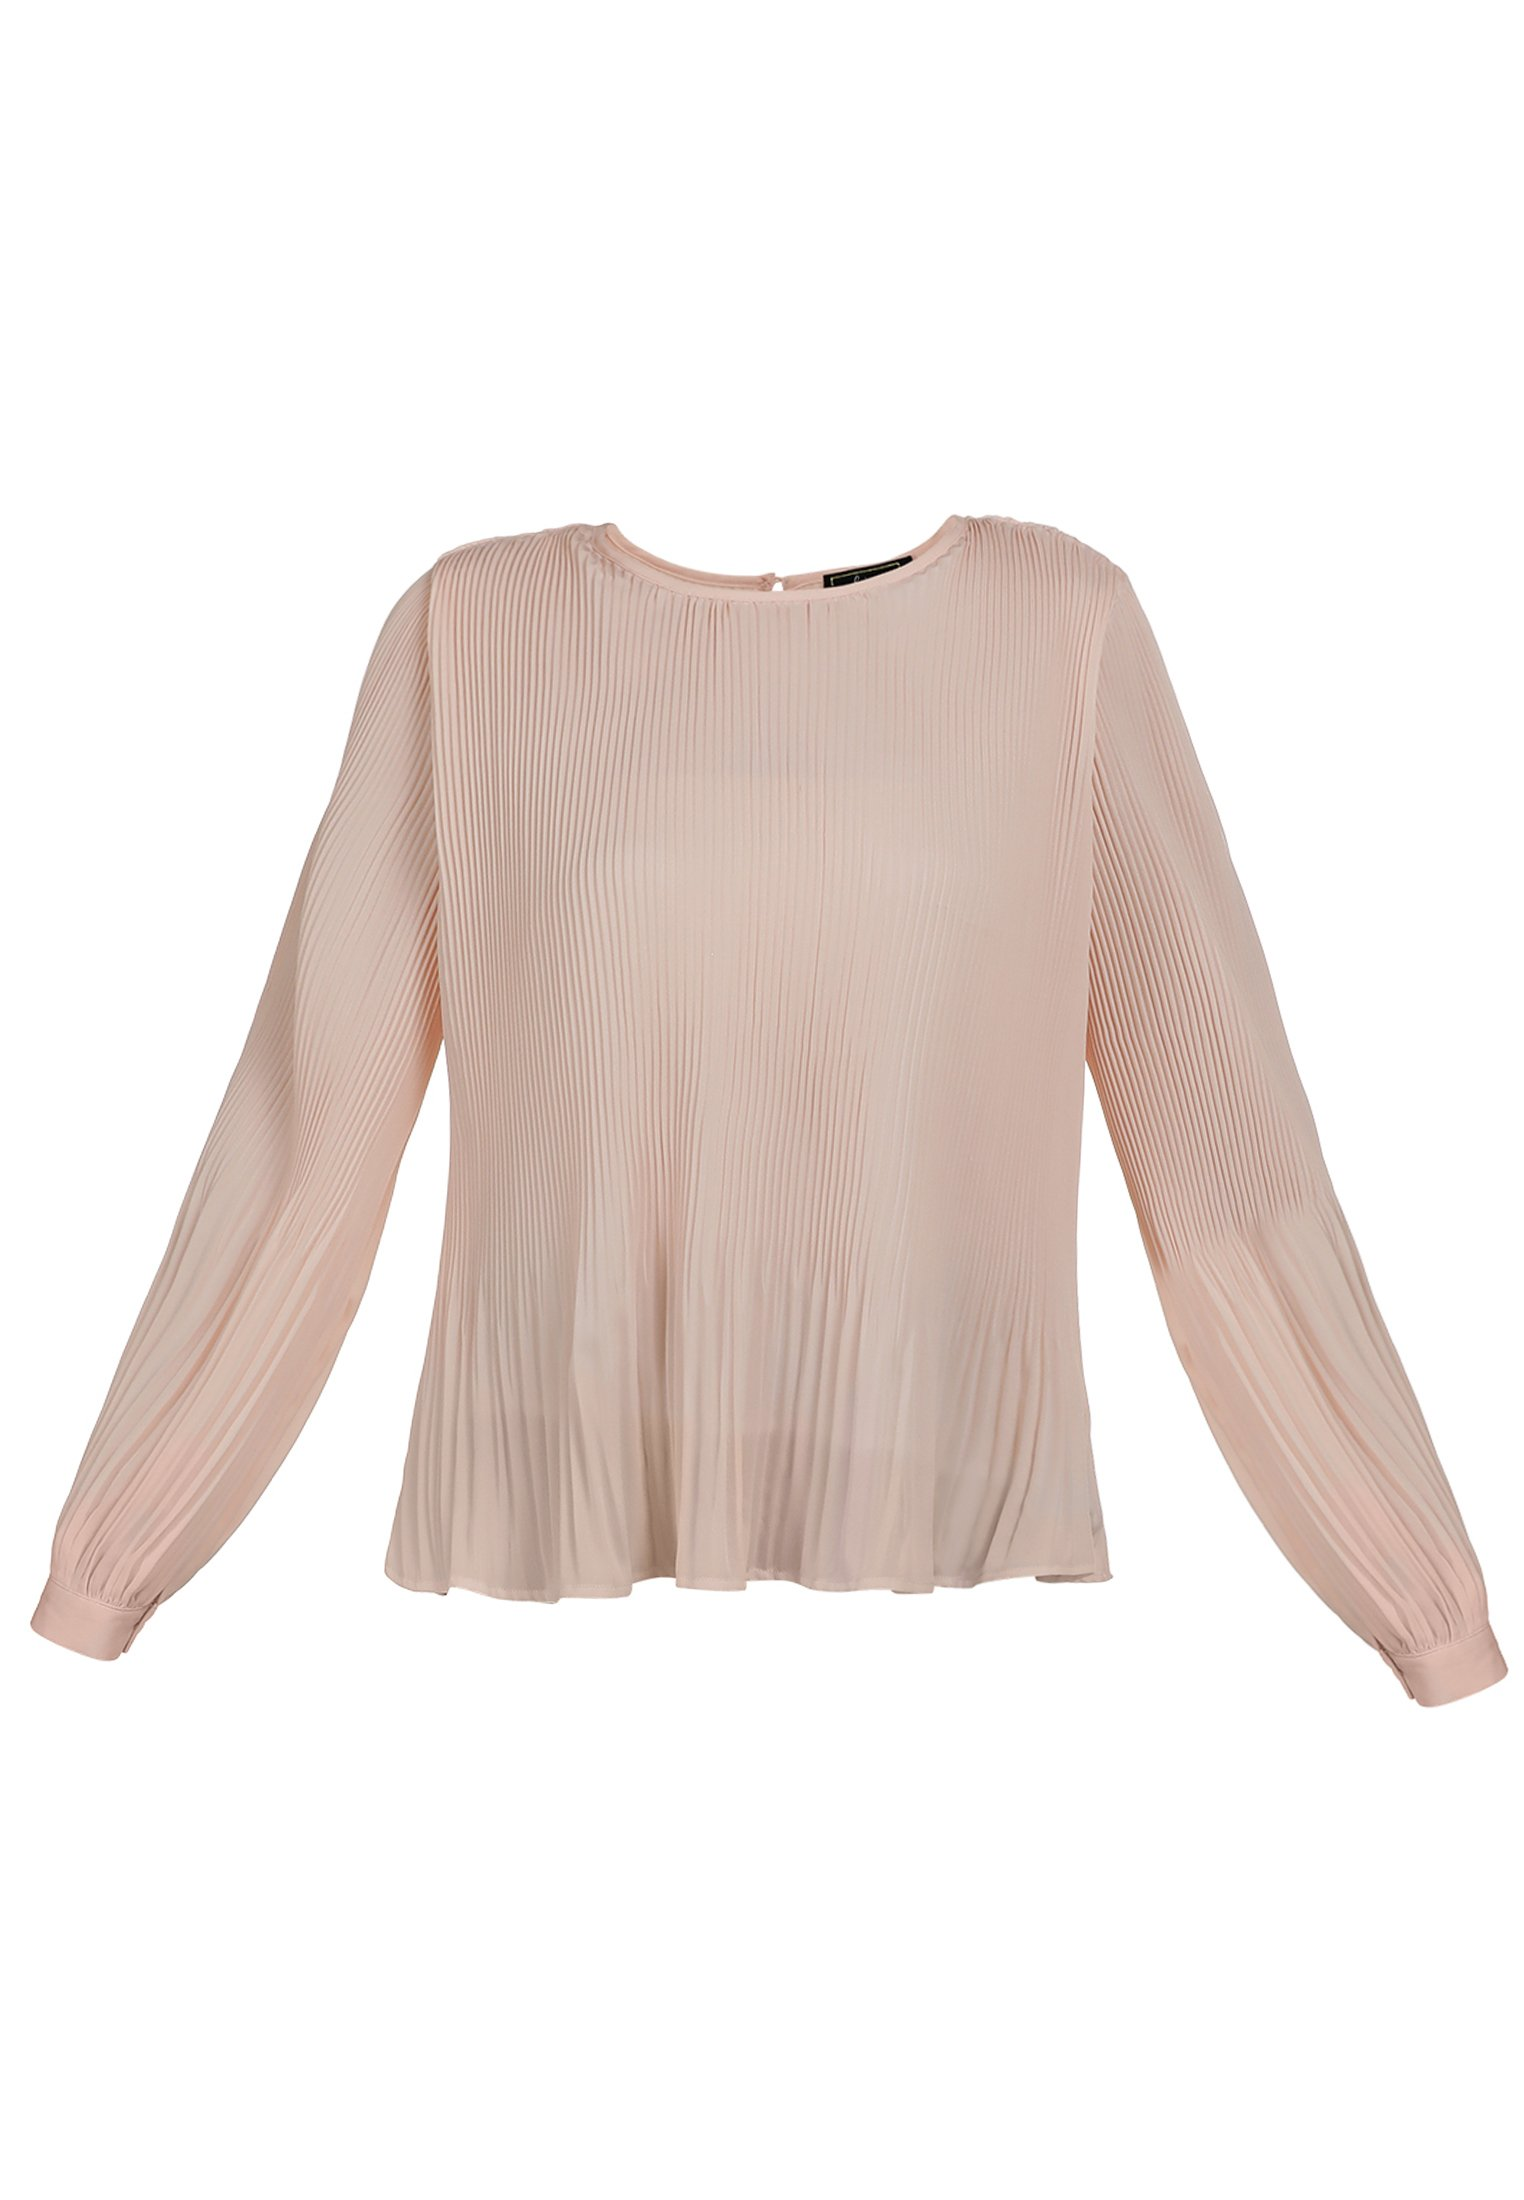 Fast Express Women's Clothing faina Blouse nude HhE2qsJiS